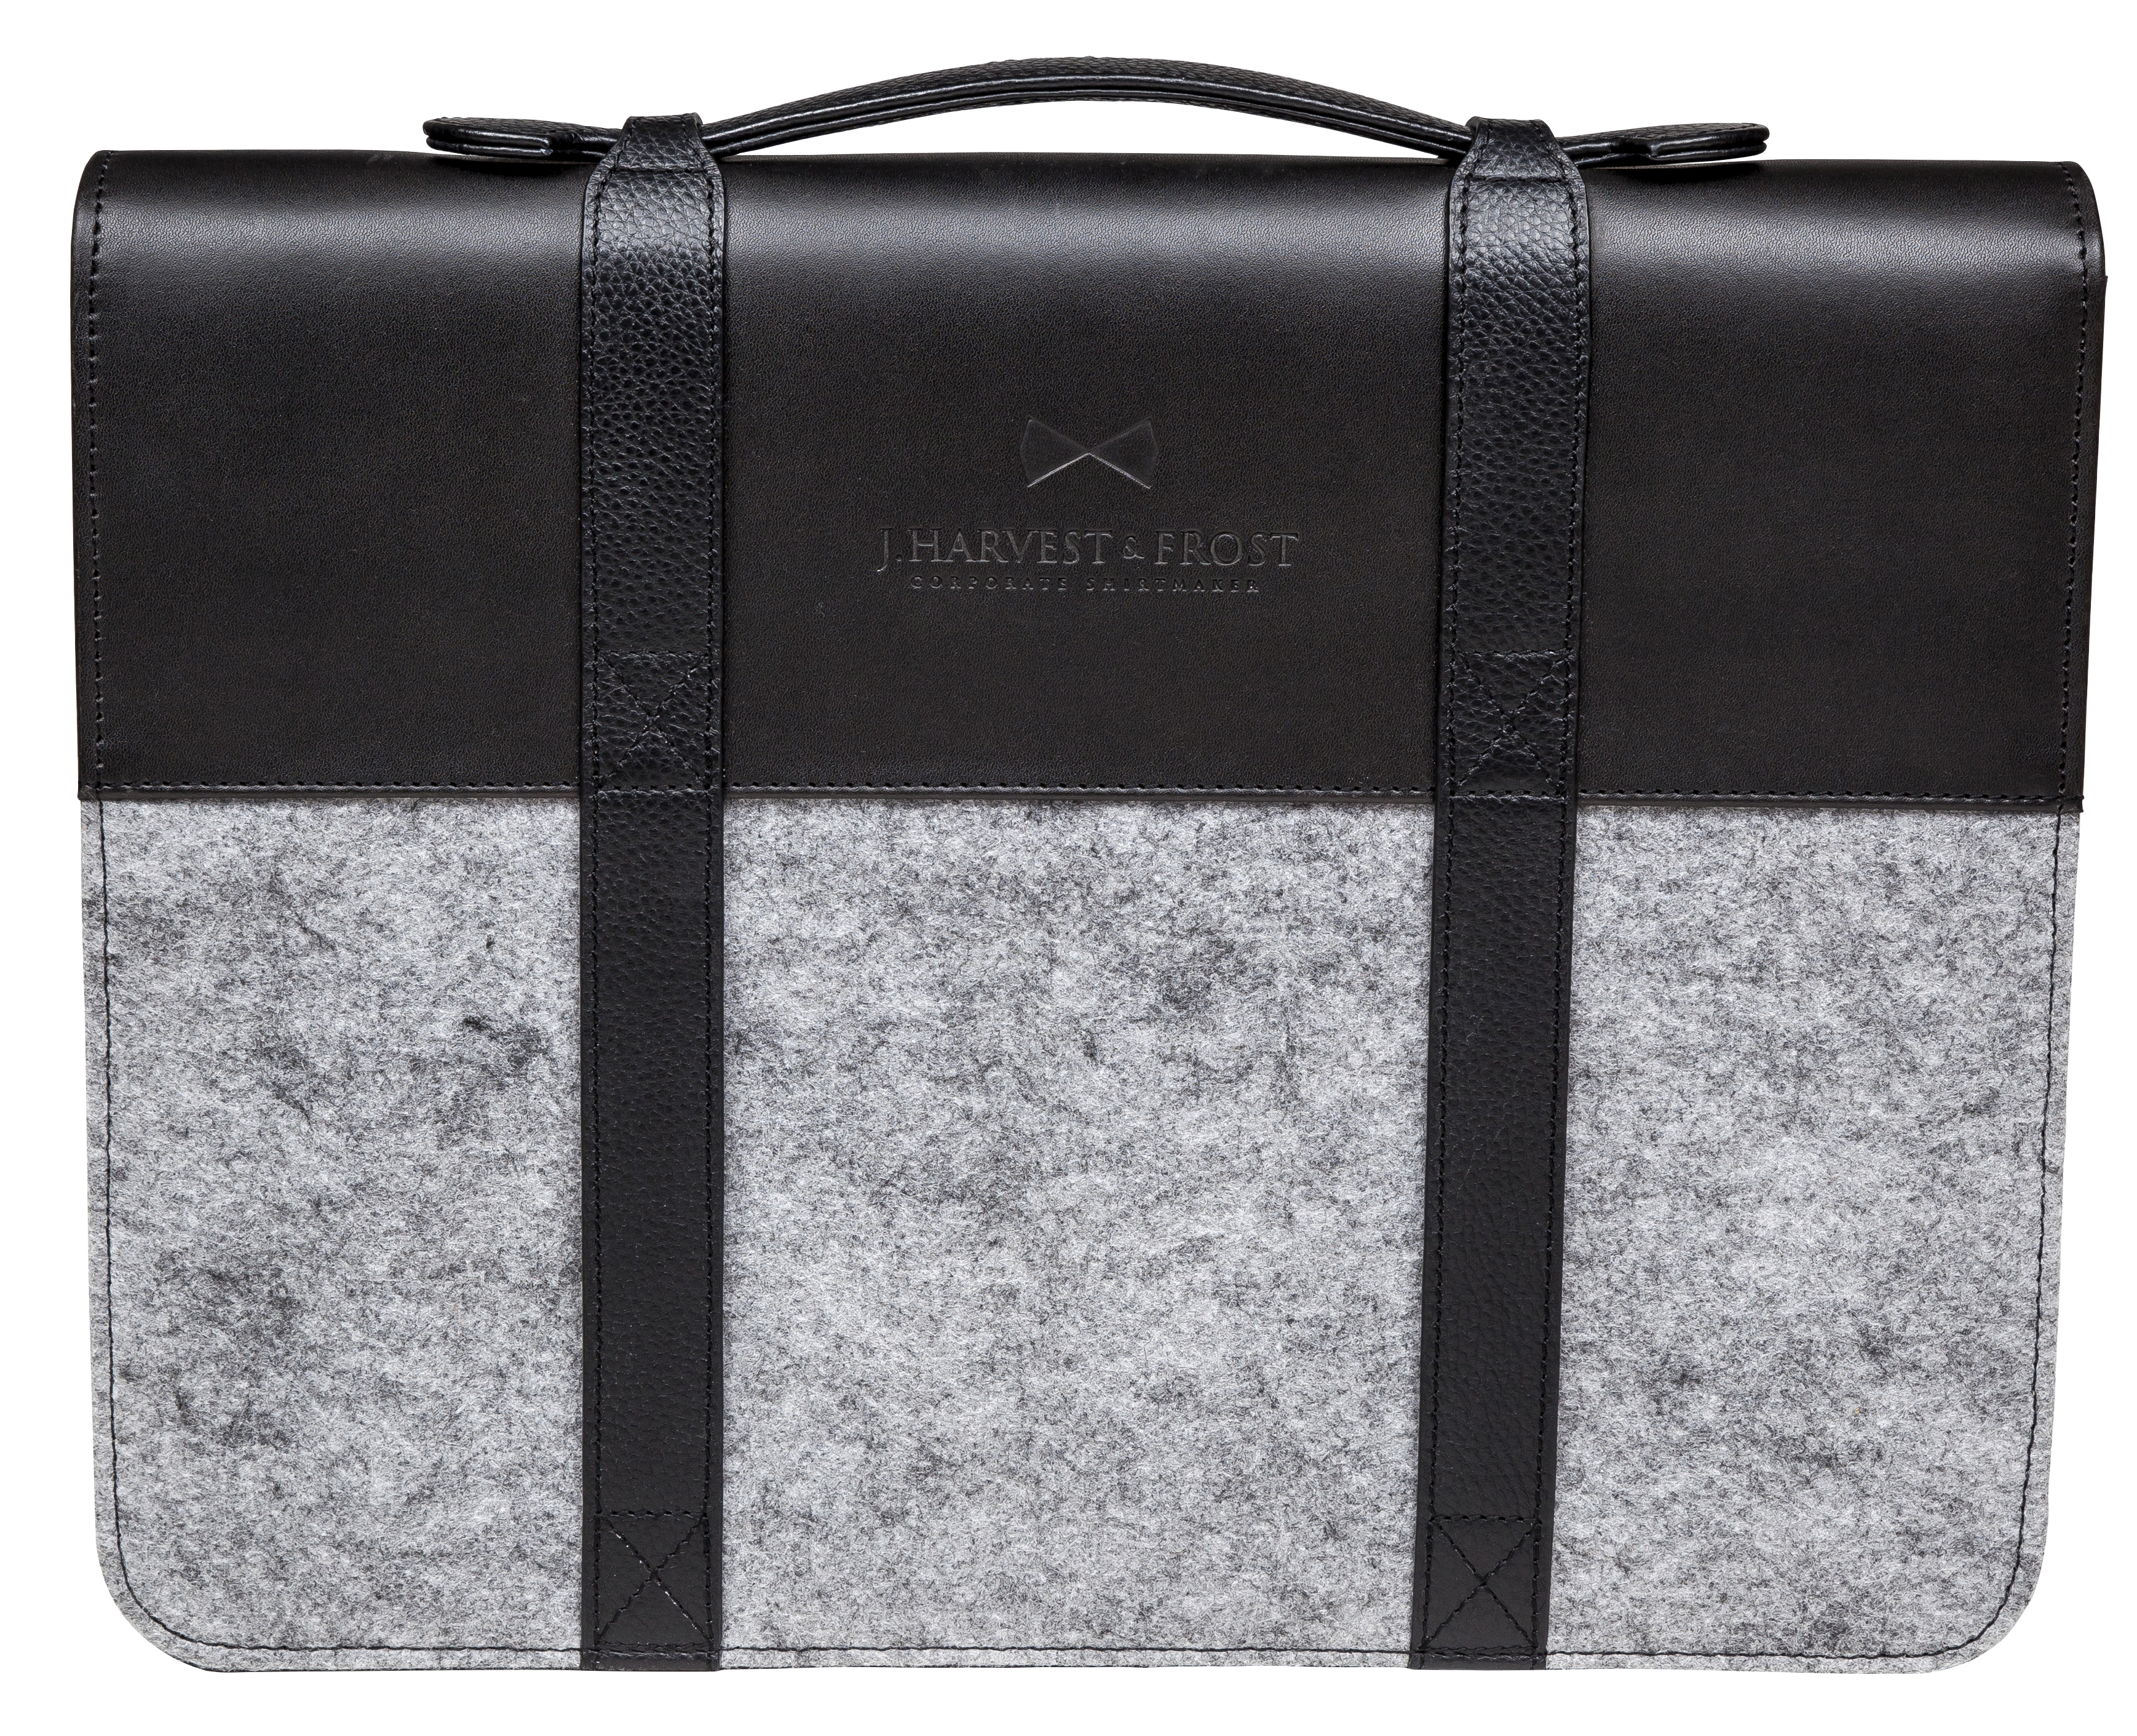 HARVEST & FROST DOCUMENT CASE  - Unisex